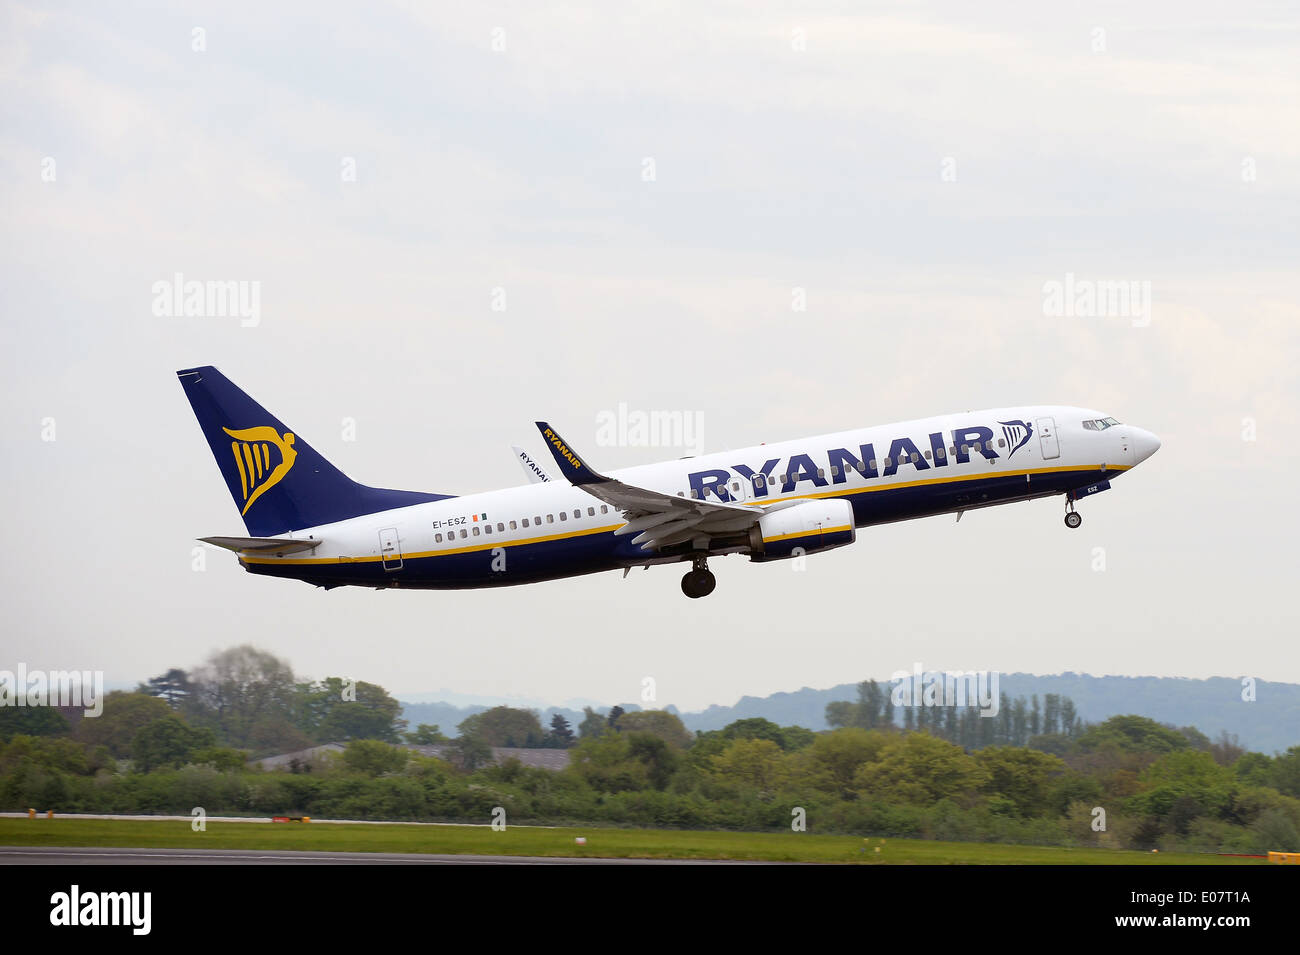 A Ryanair Boeing 737 taking off at Manchester Airport. - Stock Image